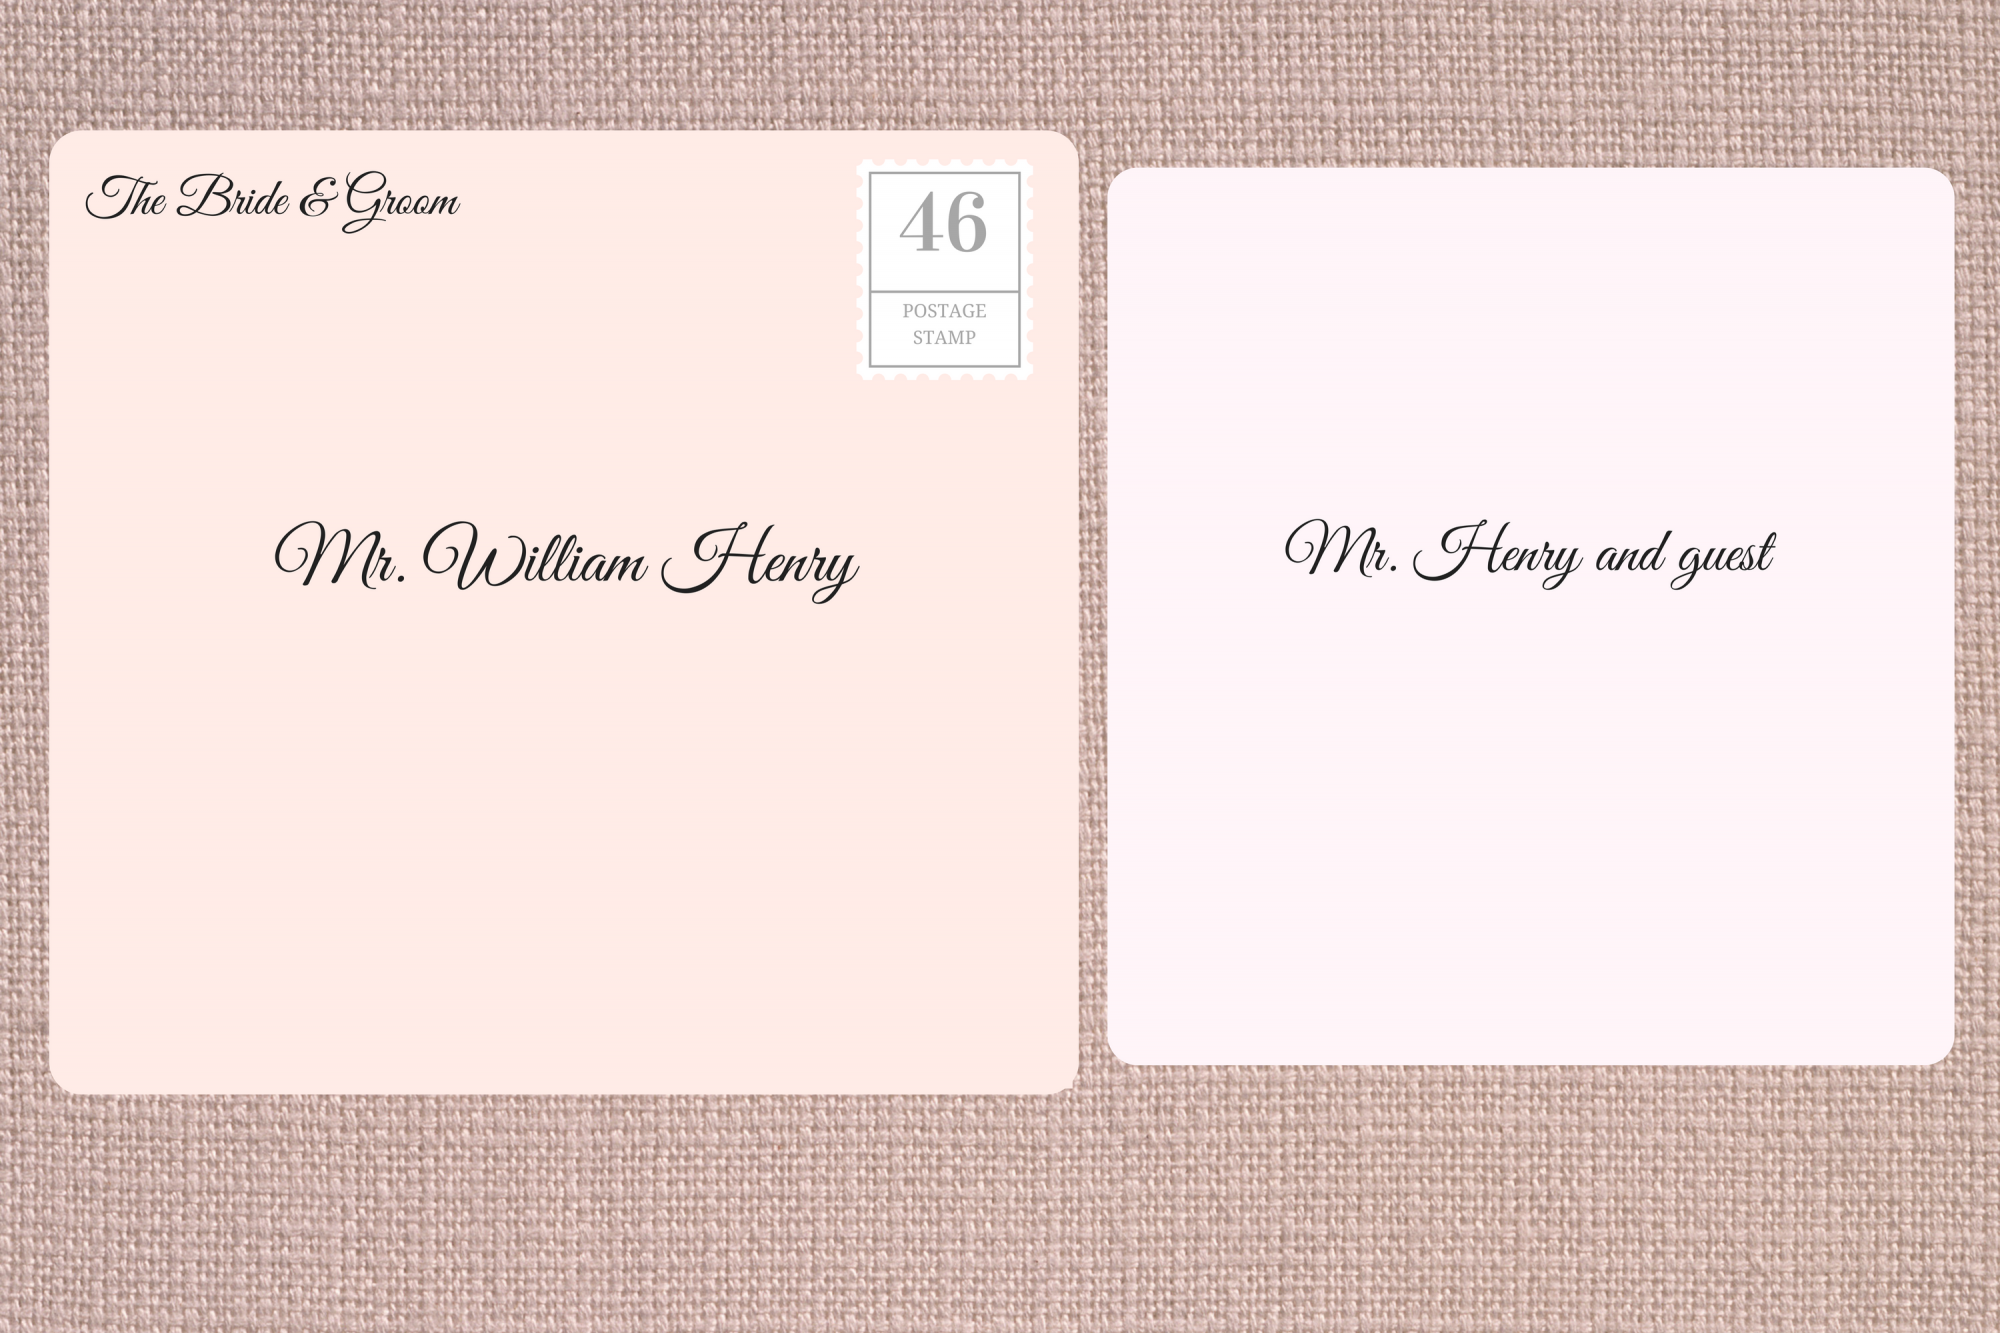 Addressing Double Envelope Wedding Invitations to Single or Divorced Man